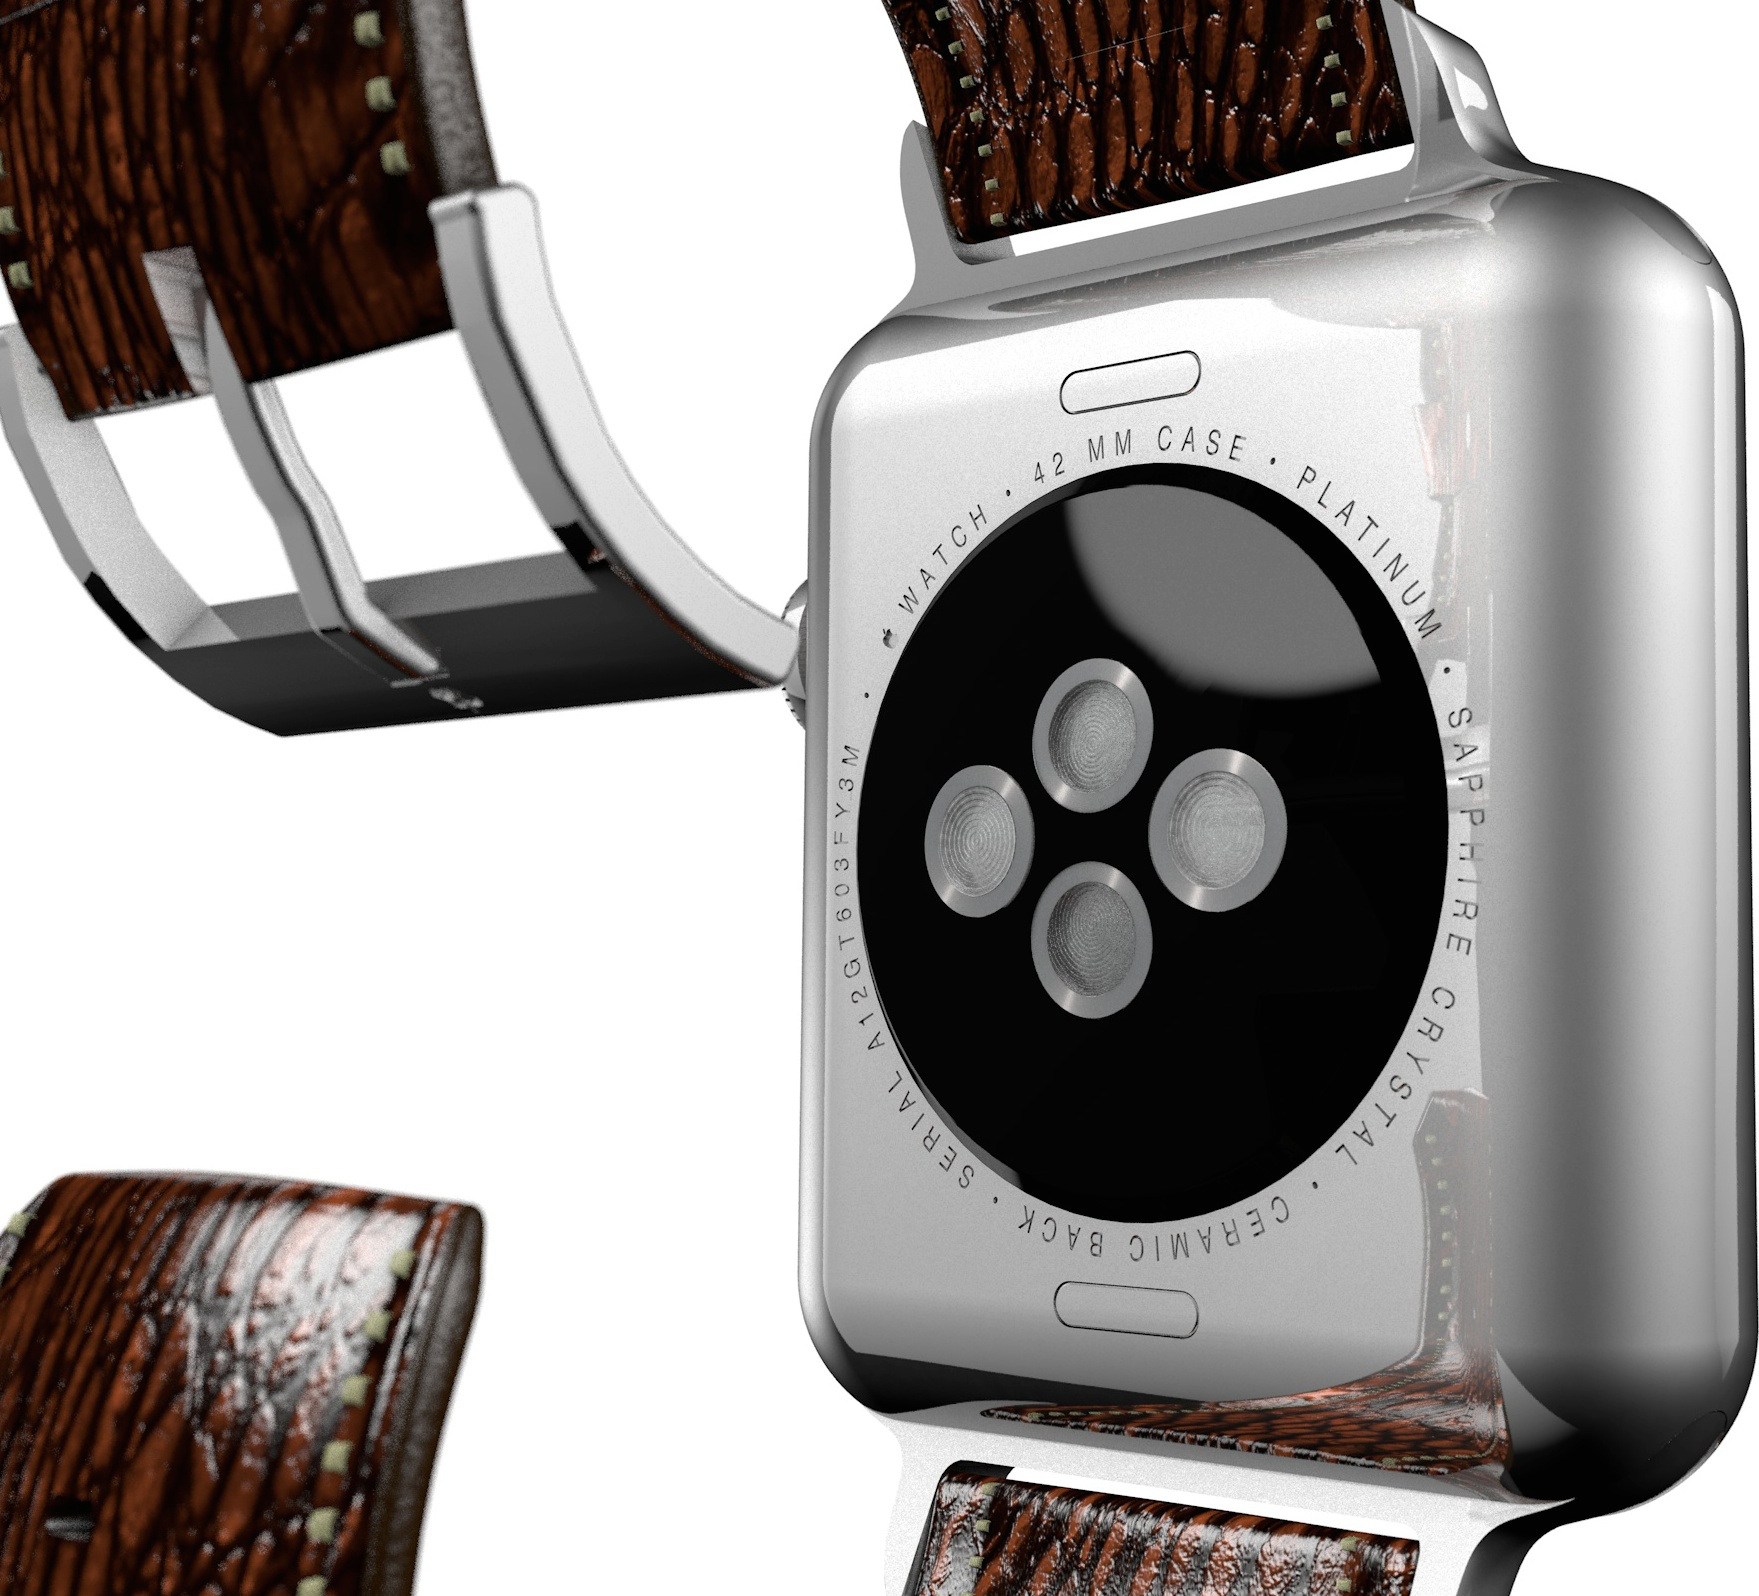 Apple Watch 2 concept by ADR Studios